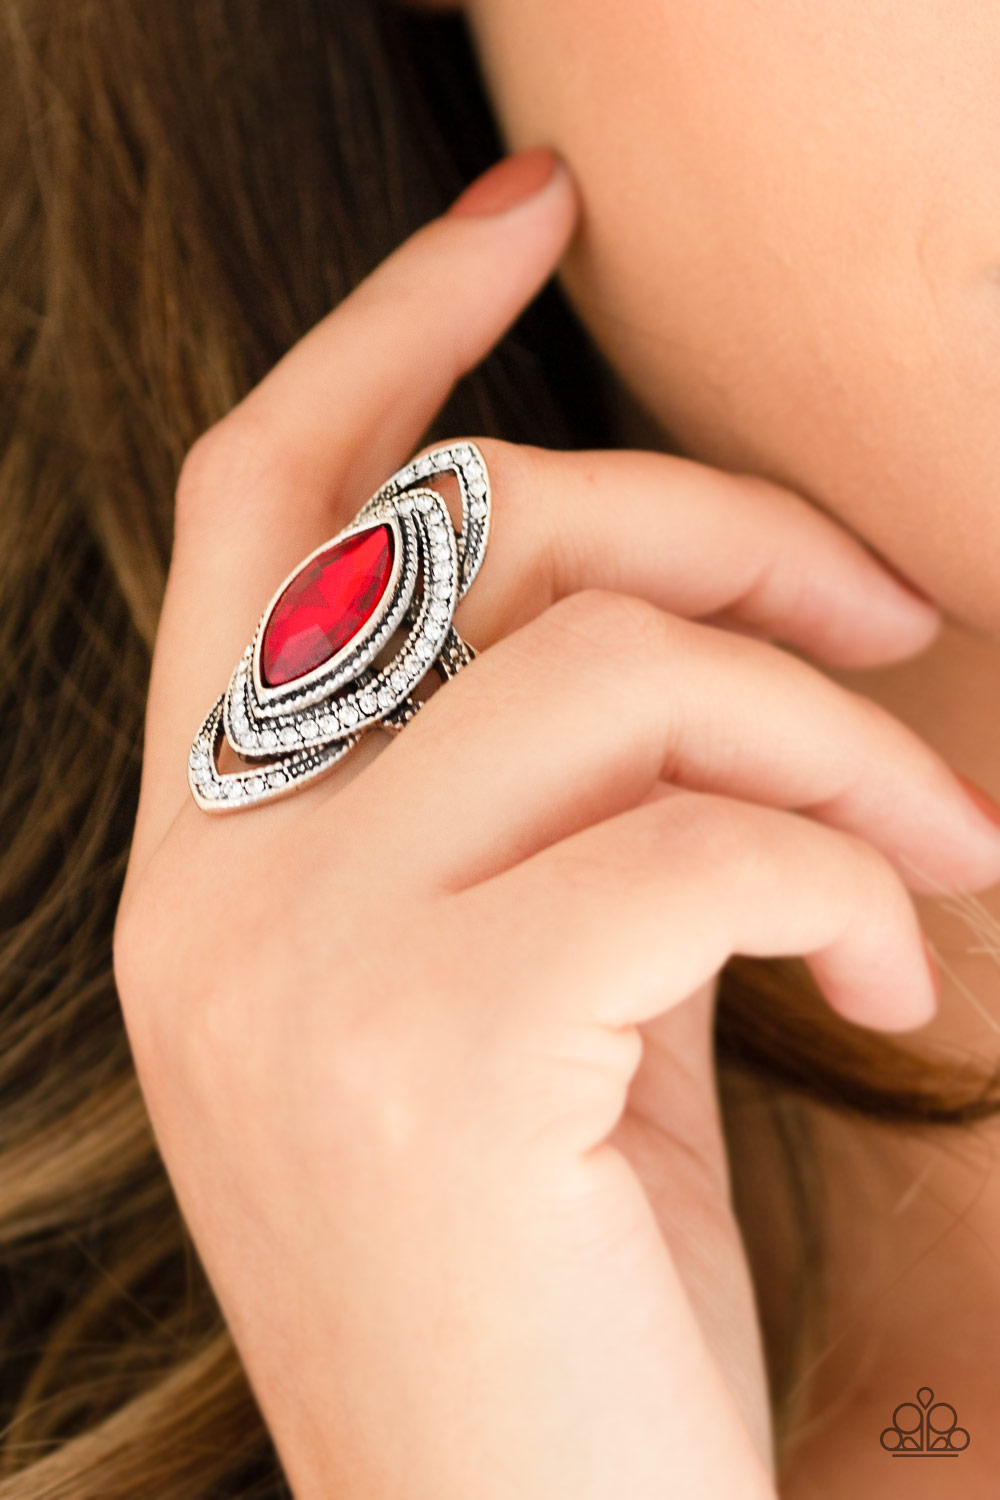 HOT Off The EMPRESS - Red Rhinestone Ring by Paparazzi $5.00 www.my-bling.com